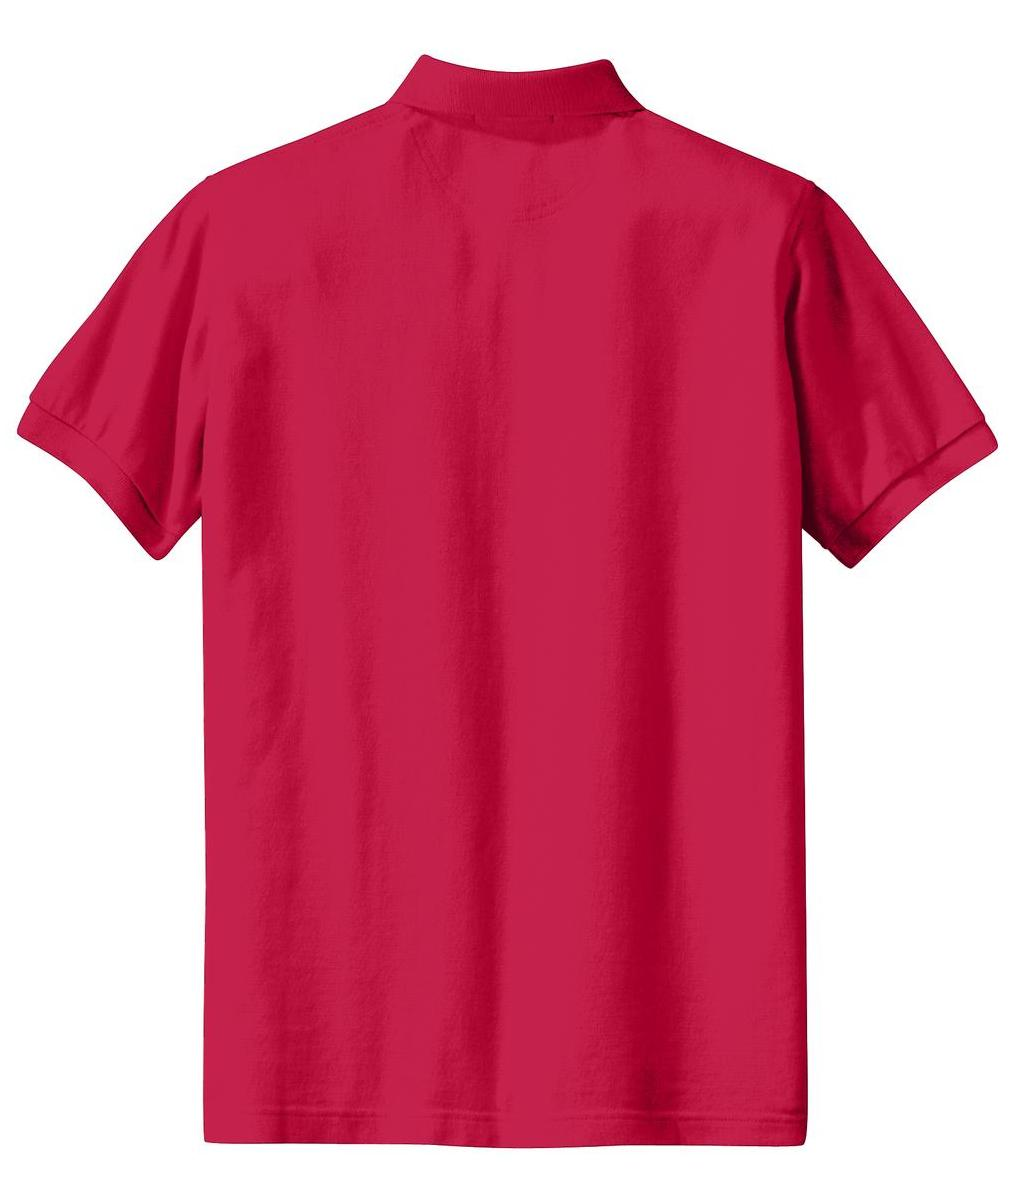 Mafoose Women's Heavyweight Cotton Pique Polo Shirt Red-Back